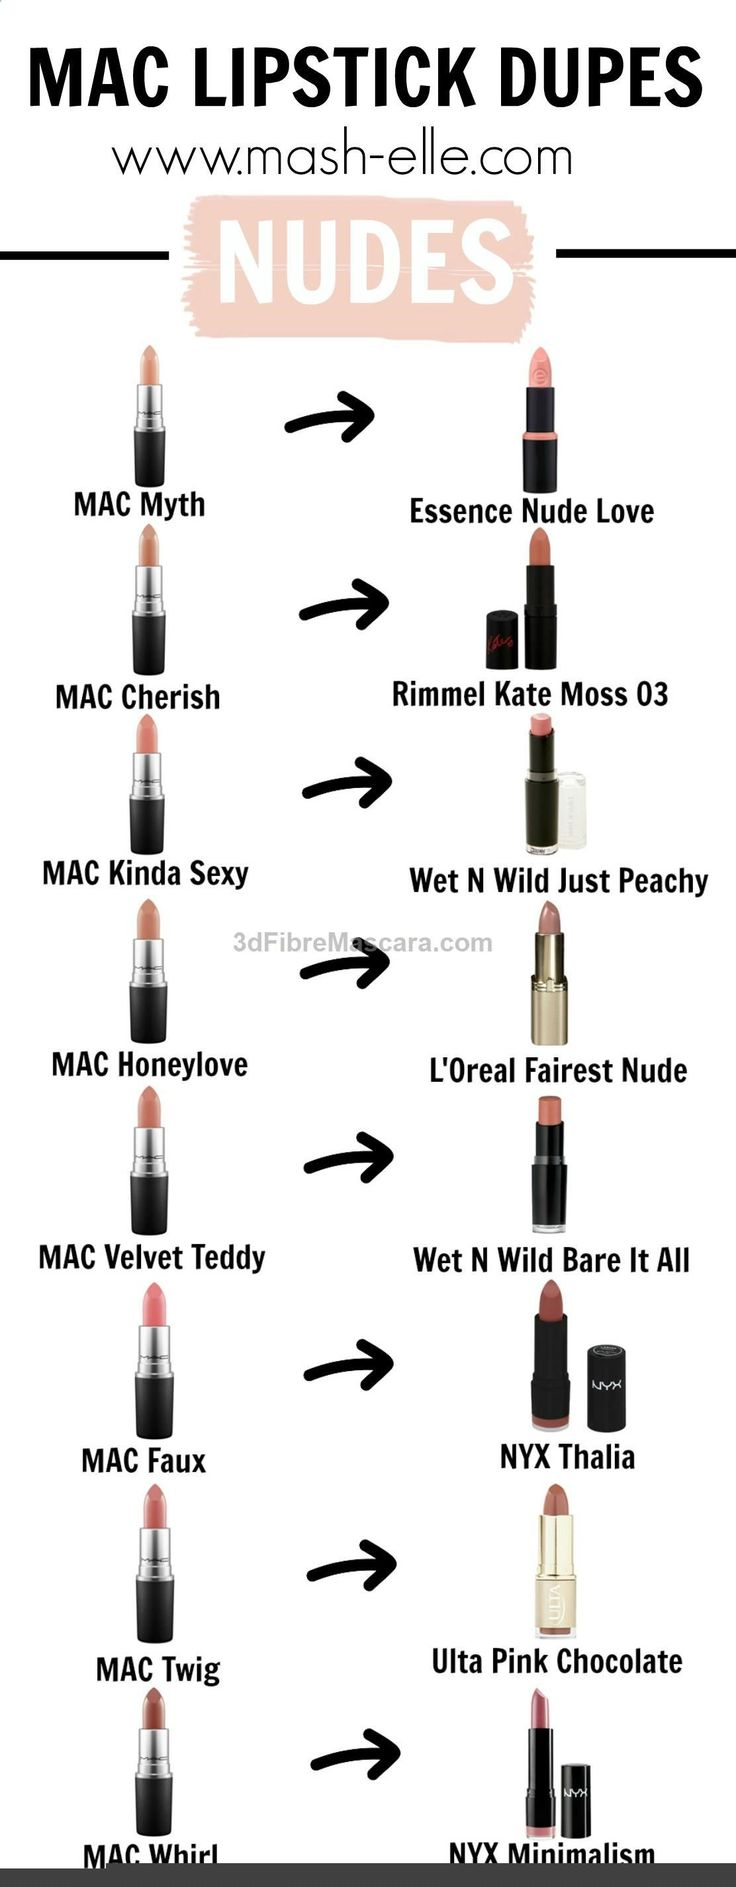 Finally a COMPLETE list of MAC bestseller lipsticks! 30 of the bestselling MAC shades paired with drugstore dupes!